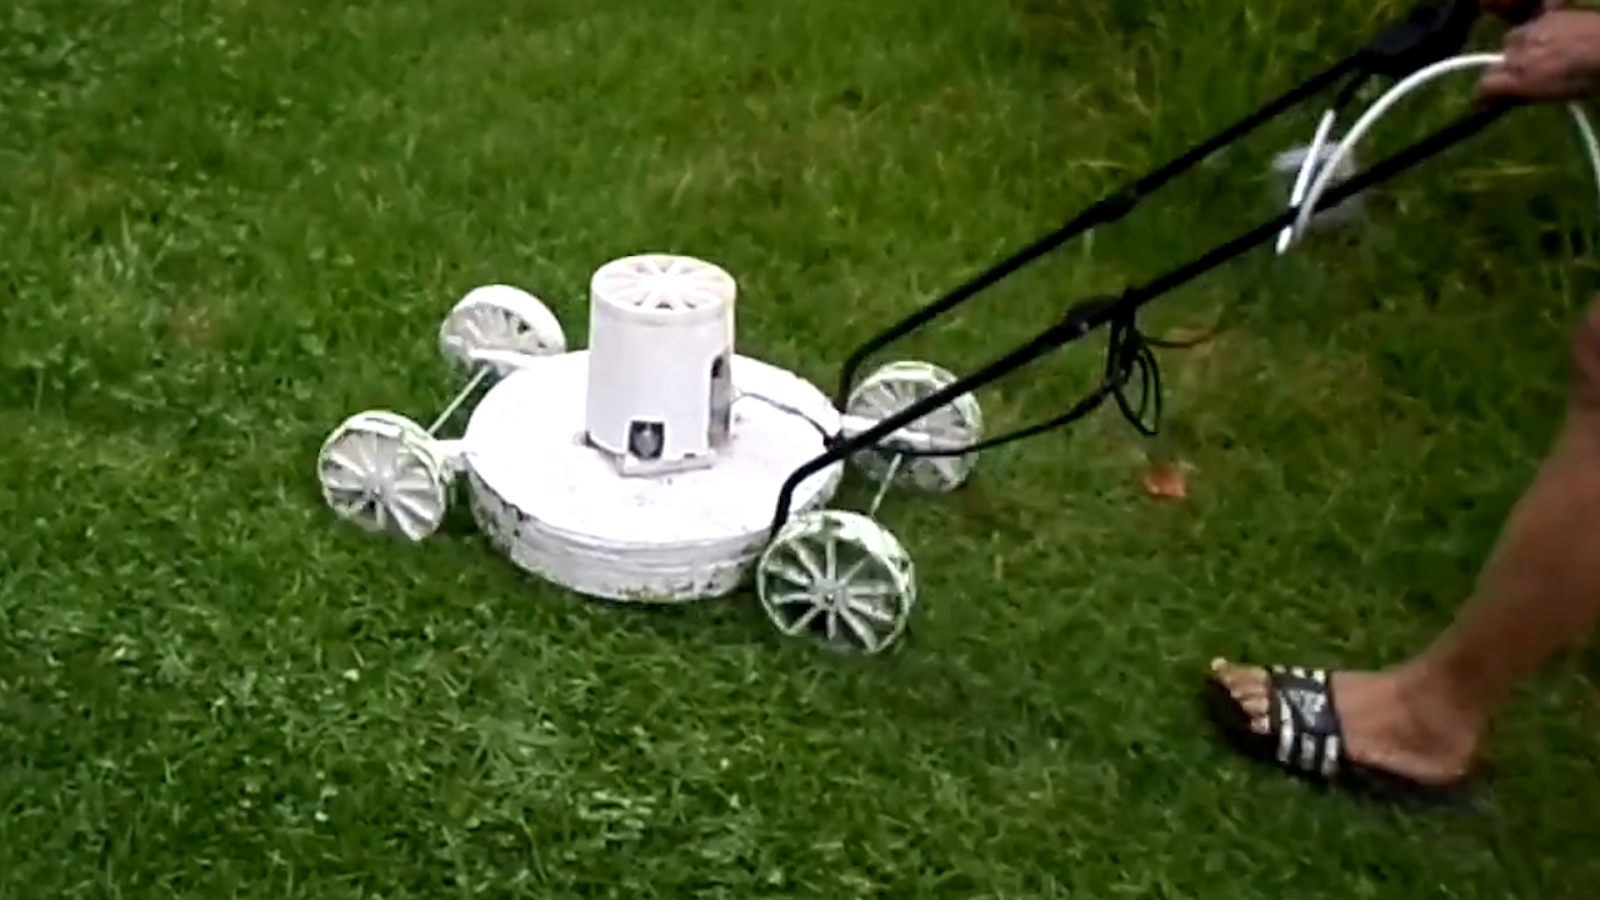 Who Invented The 3d Printer >> Man 3D prints working lawn mower in just 9 hours using giant 3D printer he invented